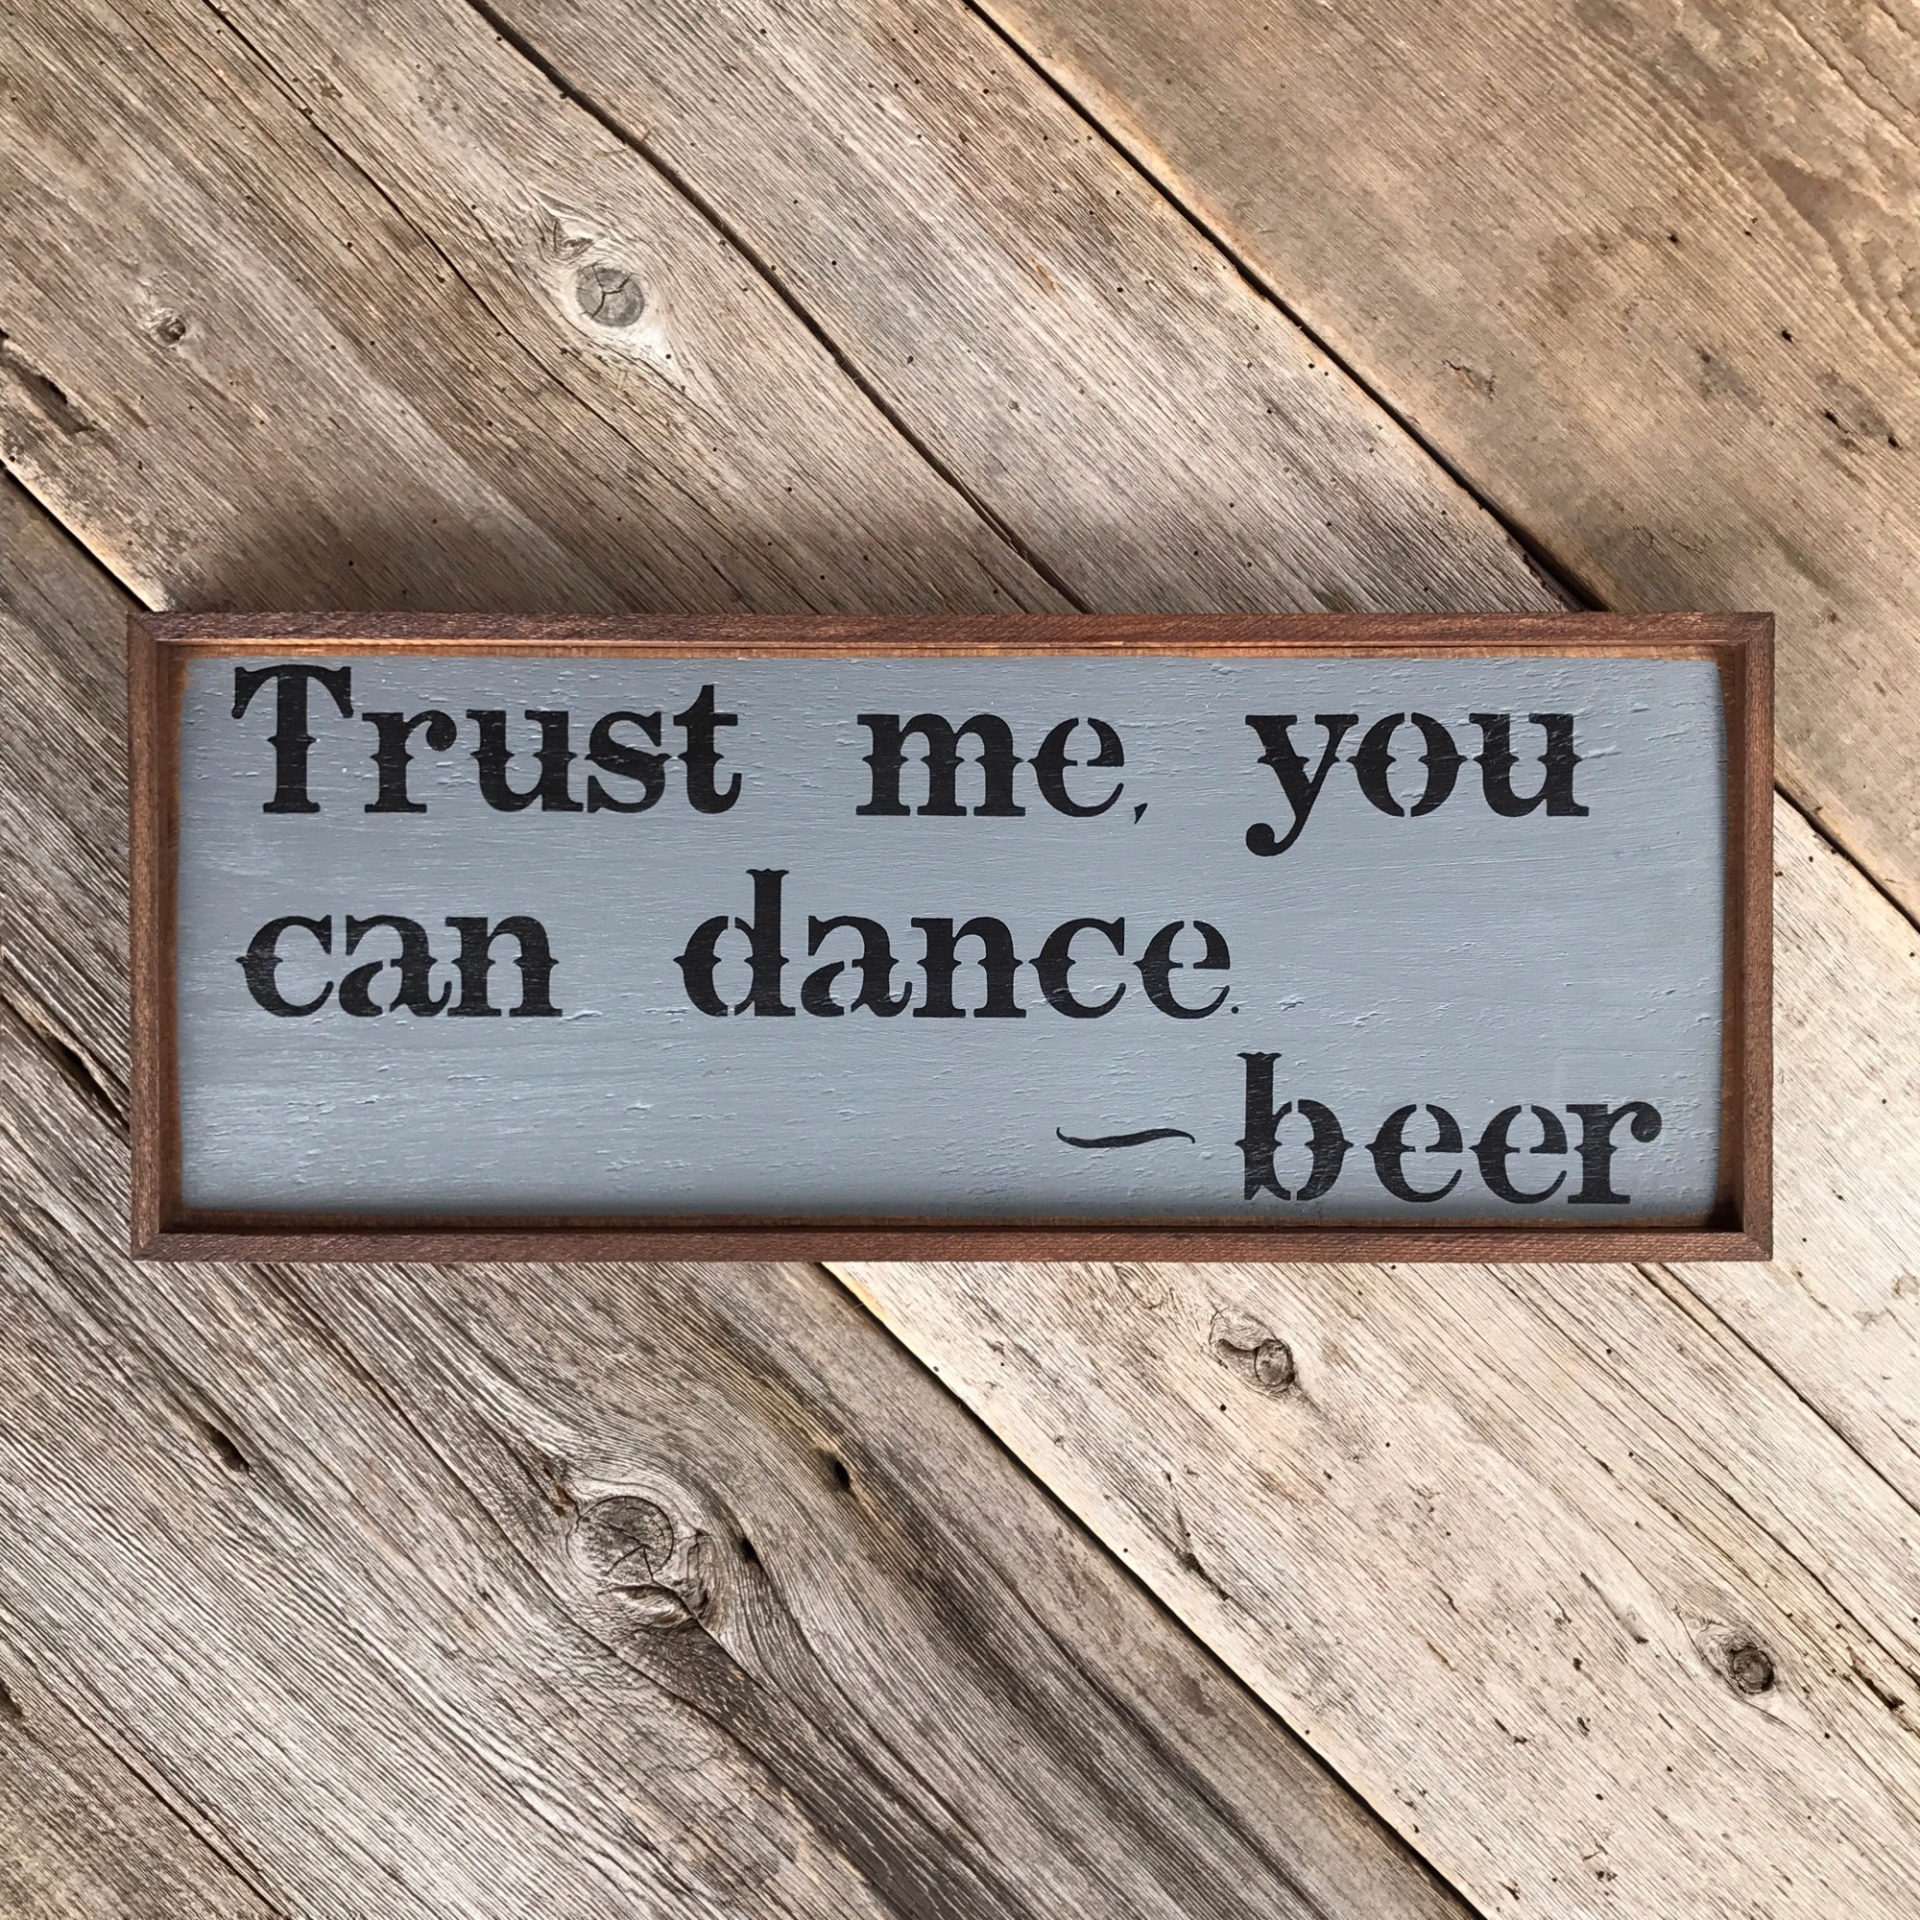 Wood Signs, Handmade Signs, Funny Quotes, Drinking Quotes, Bar Decor, Home Bar Decor